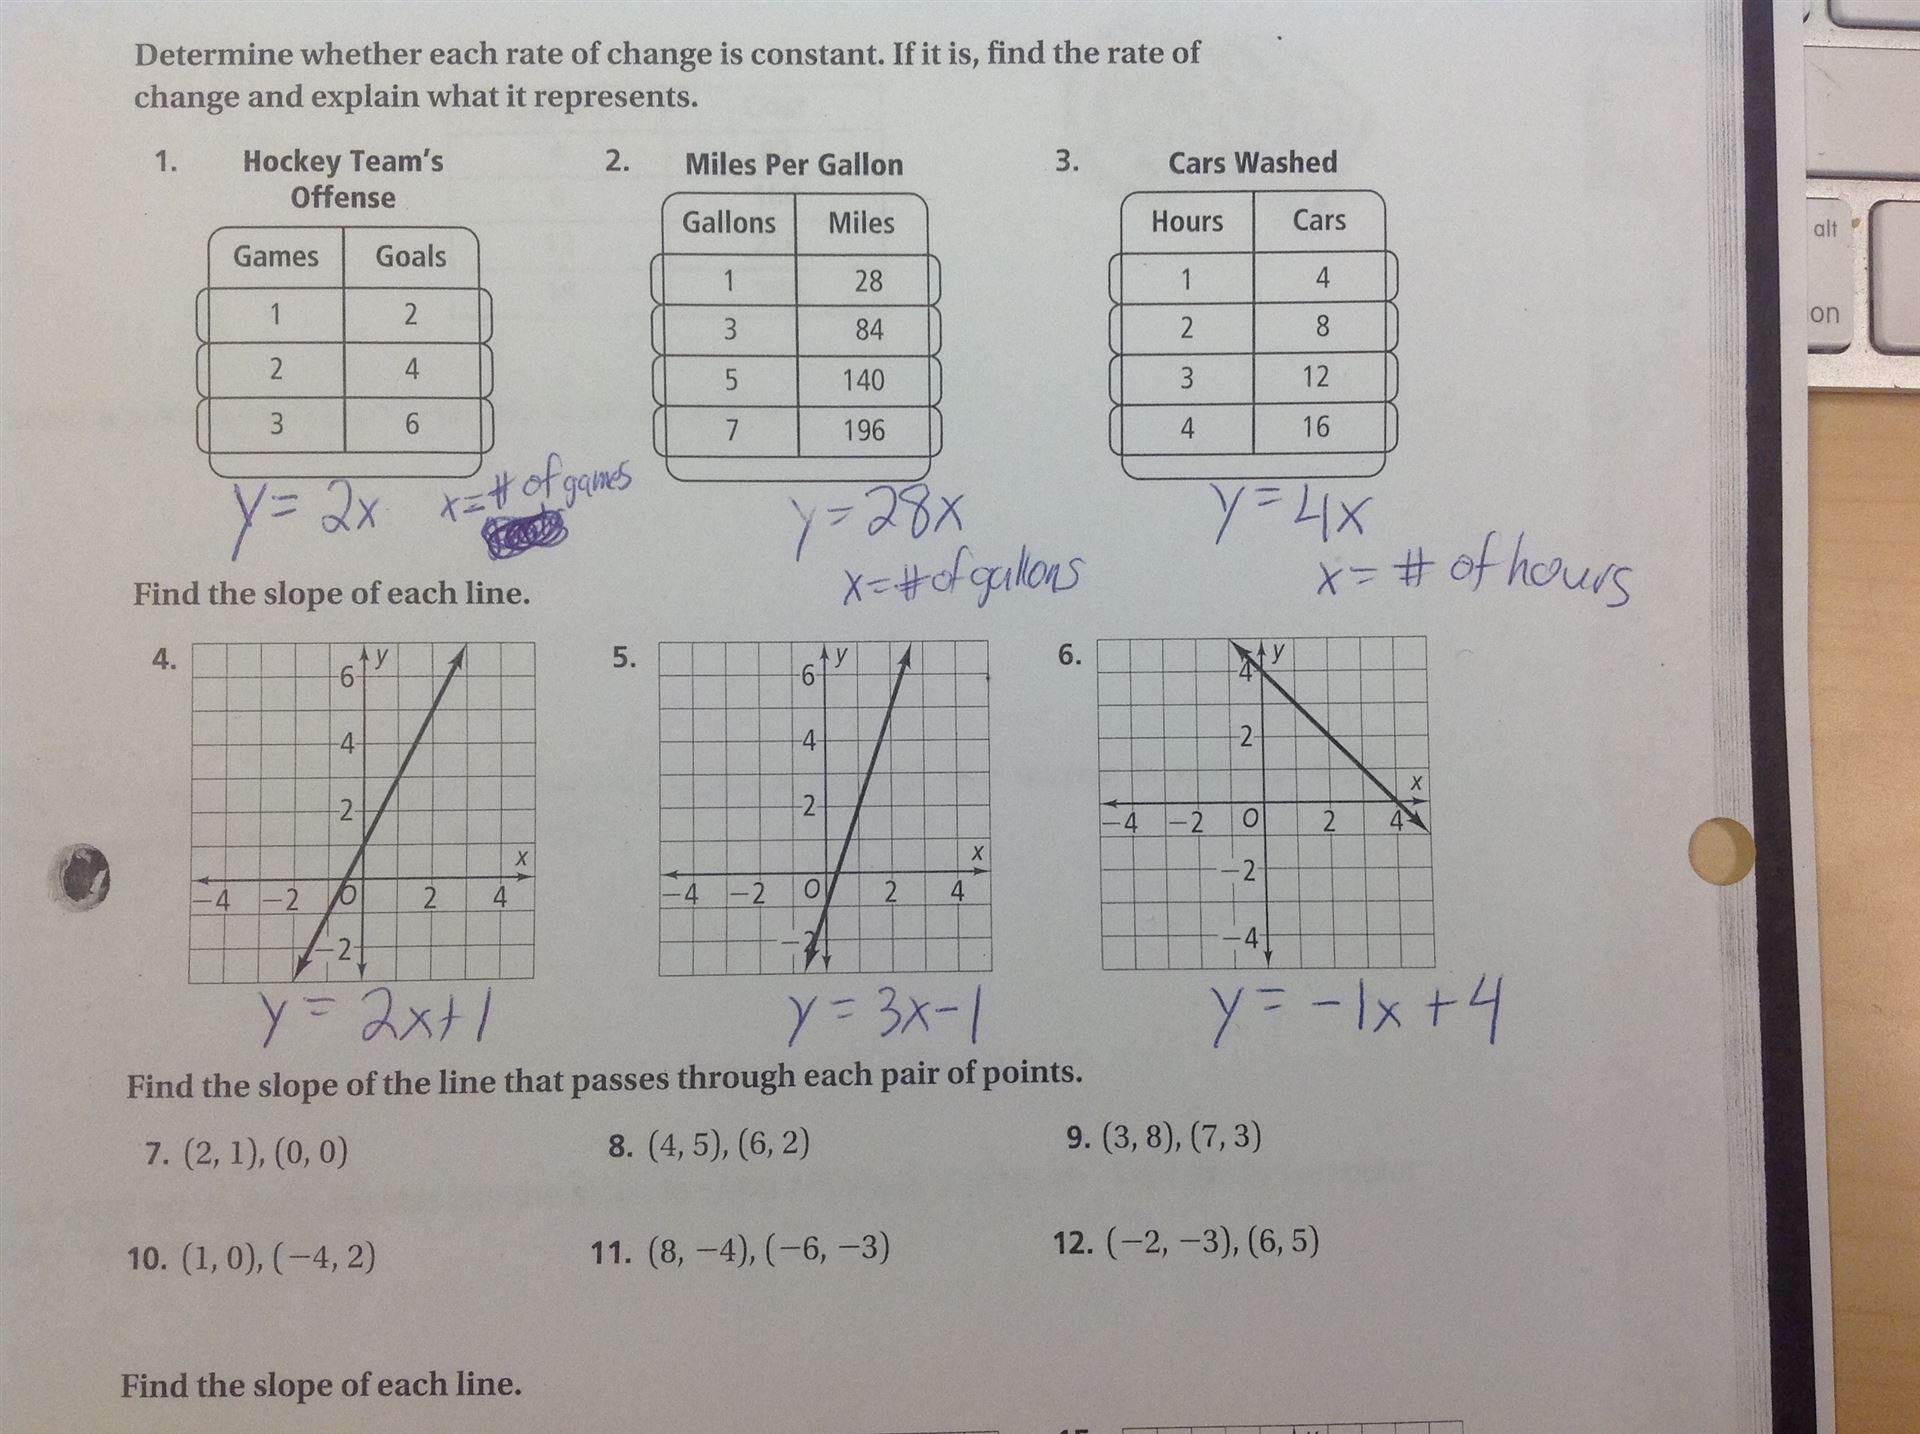 math worksheet : south warren middle : Moving Words Math Worksheet Answers